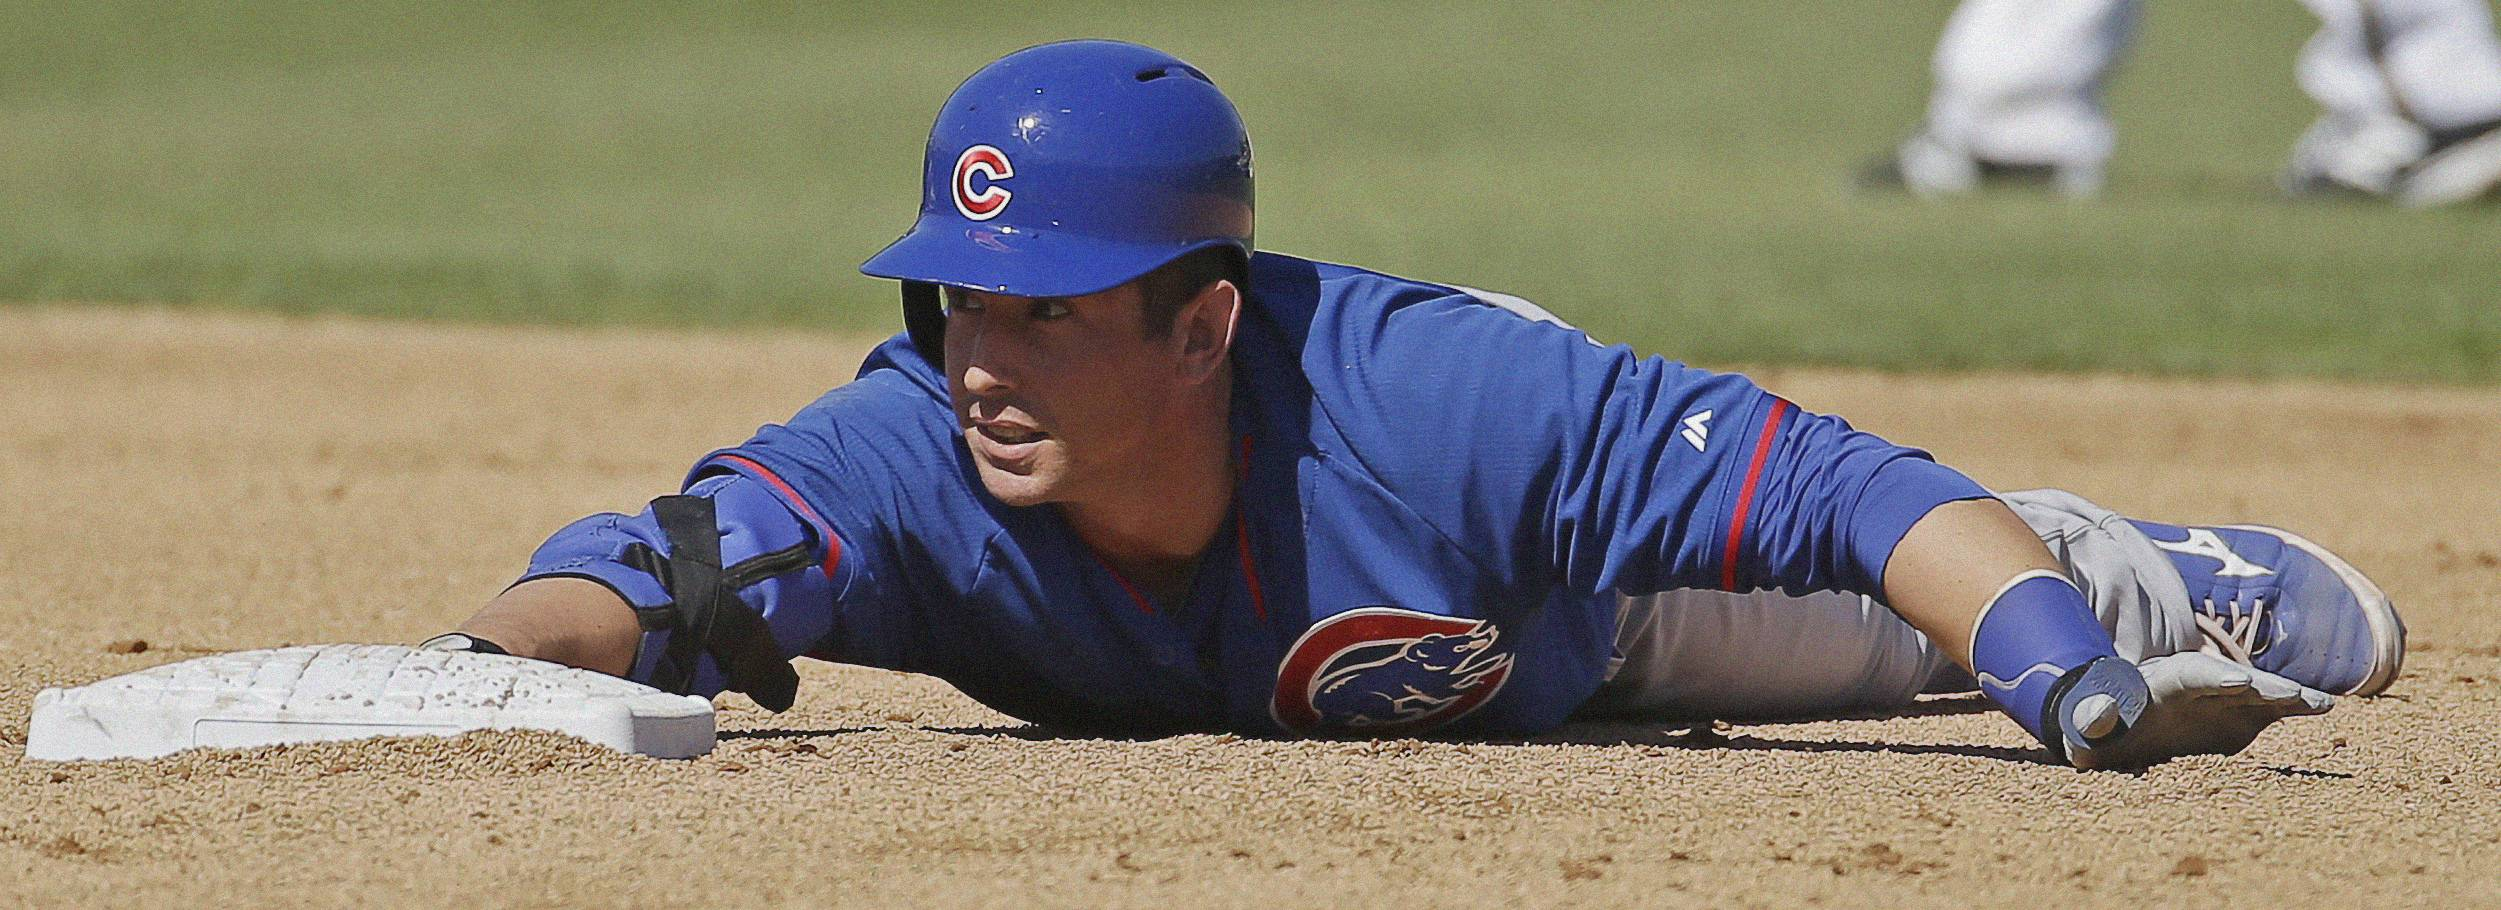 Backup catcher John Baker has seen plenty of ups and downs during his baseball career, but he was flying high Thursday when he learned he earned a spot on the Cubs' opening-day roster.